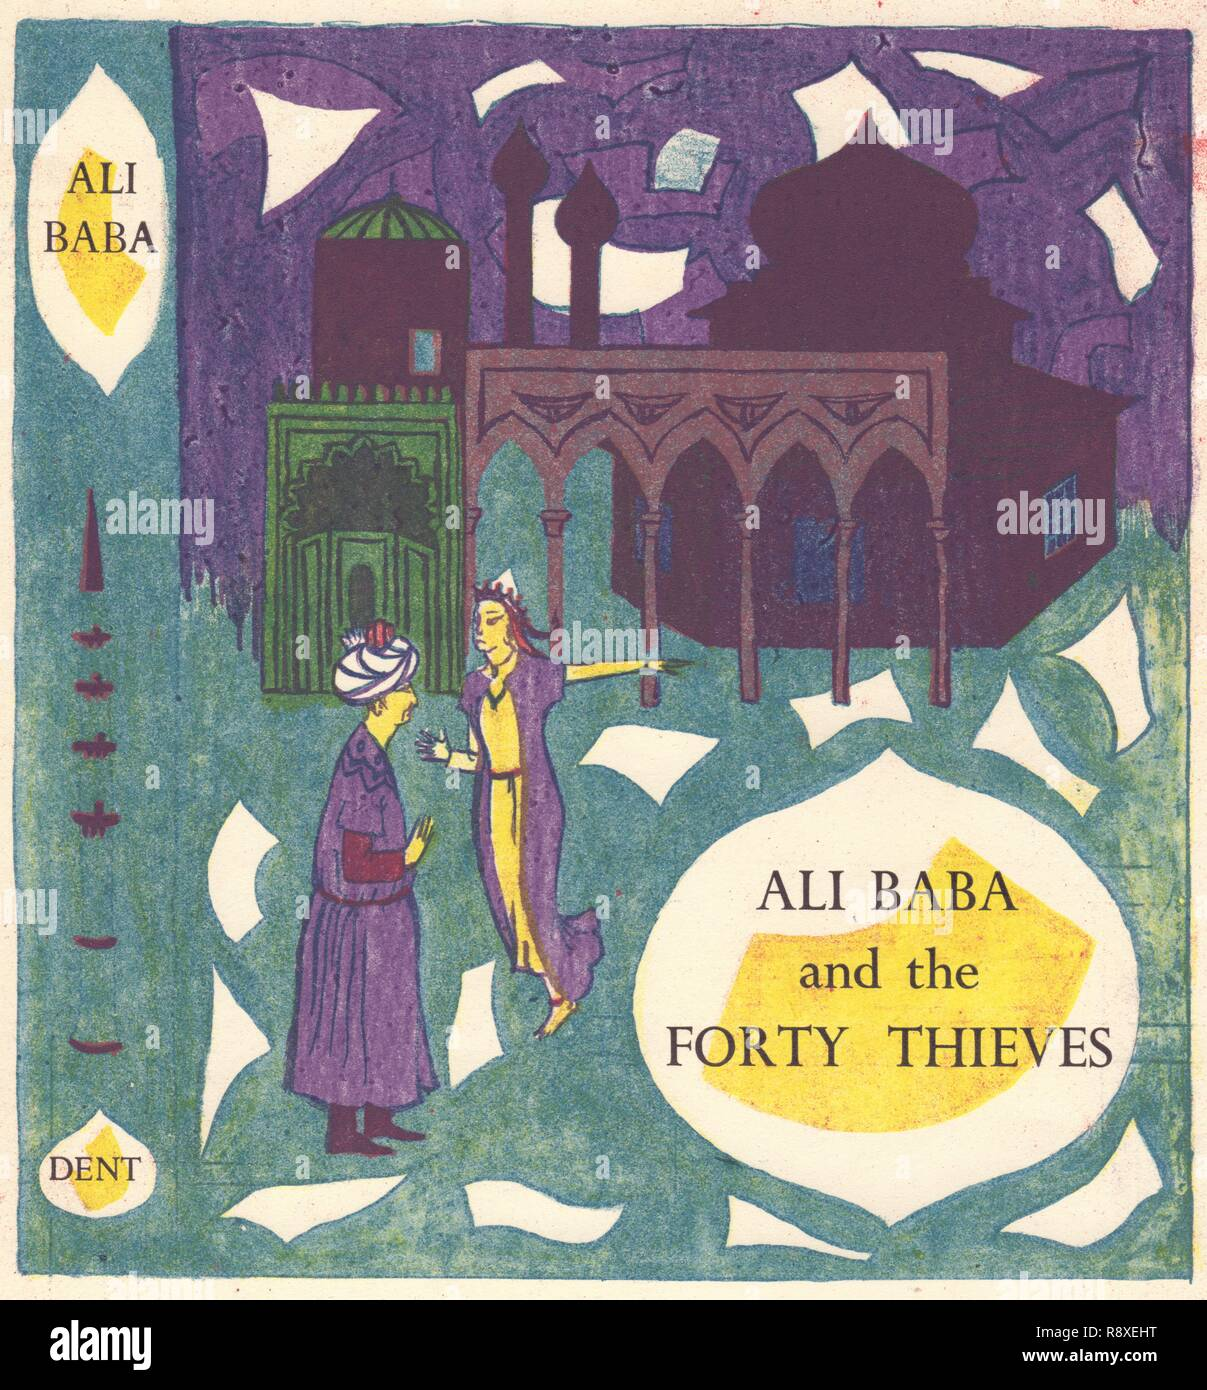 'Ali Baba and the Forty Thieves', c1950. Book cover design. Shirley Markham (1931-1999) studied Graphic Design and Illustration at Central School of A - Stock Image